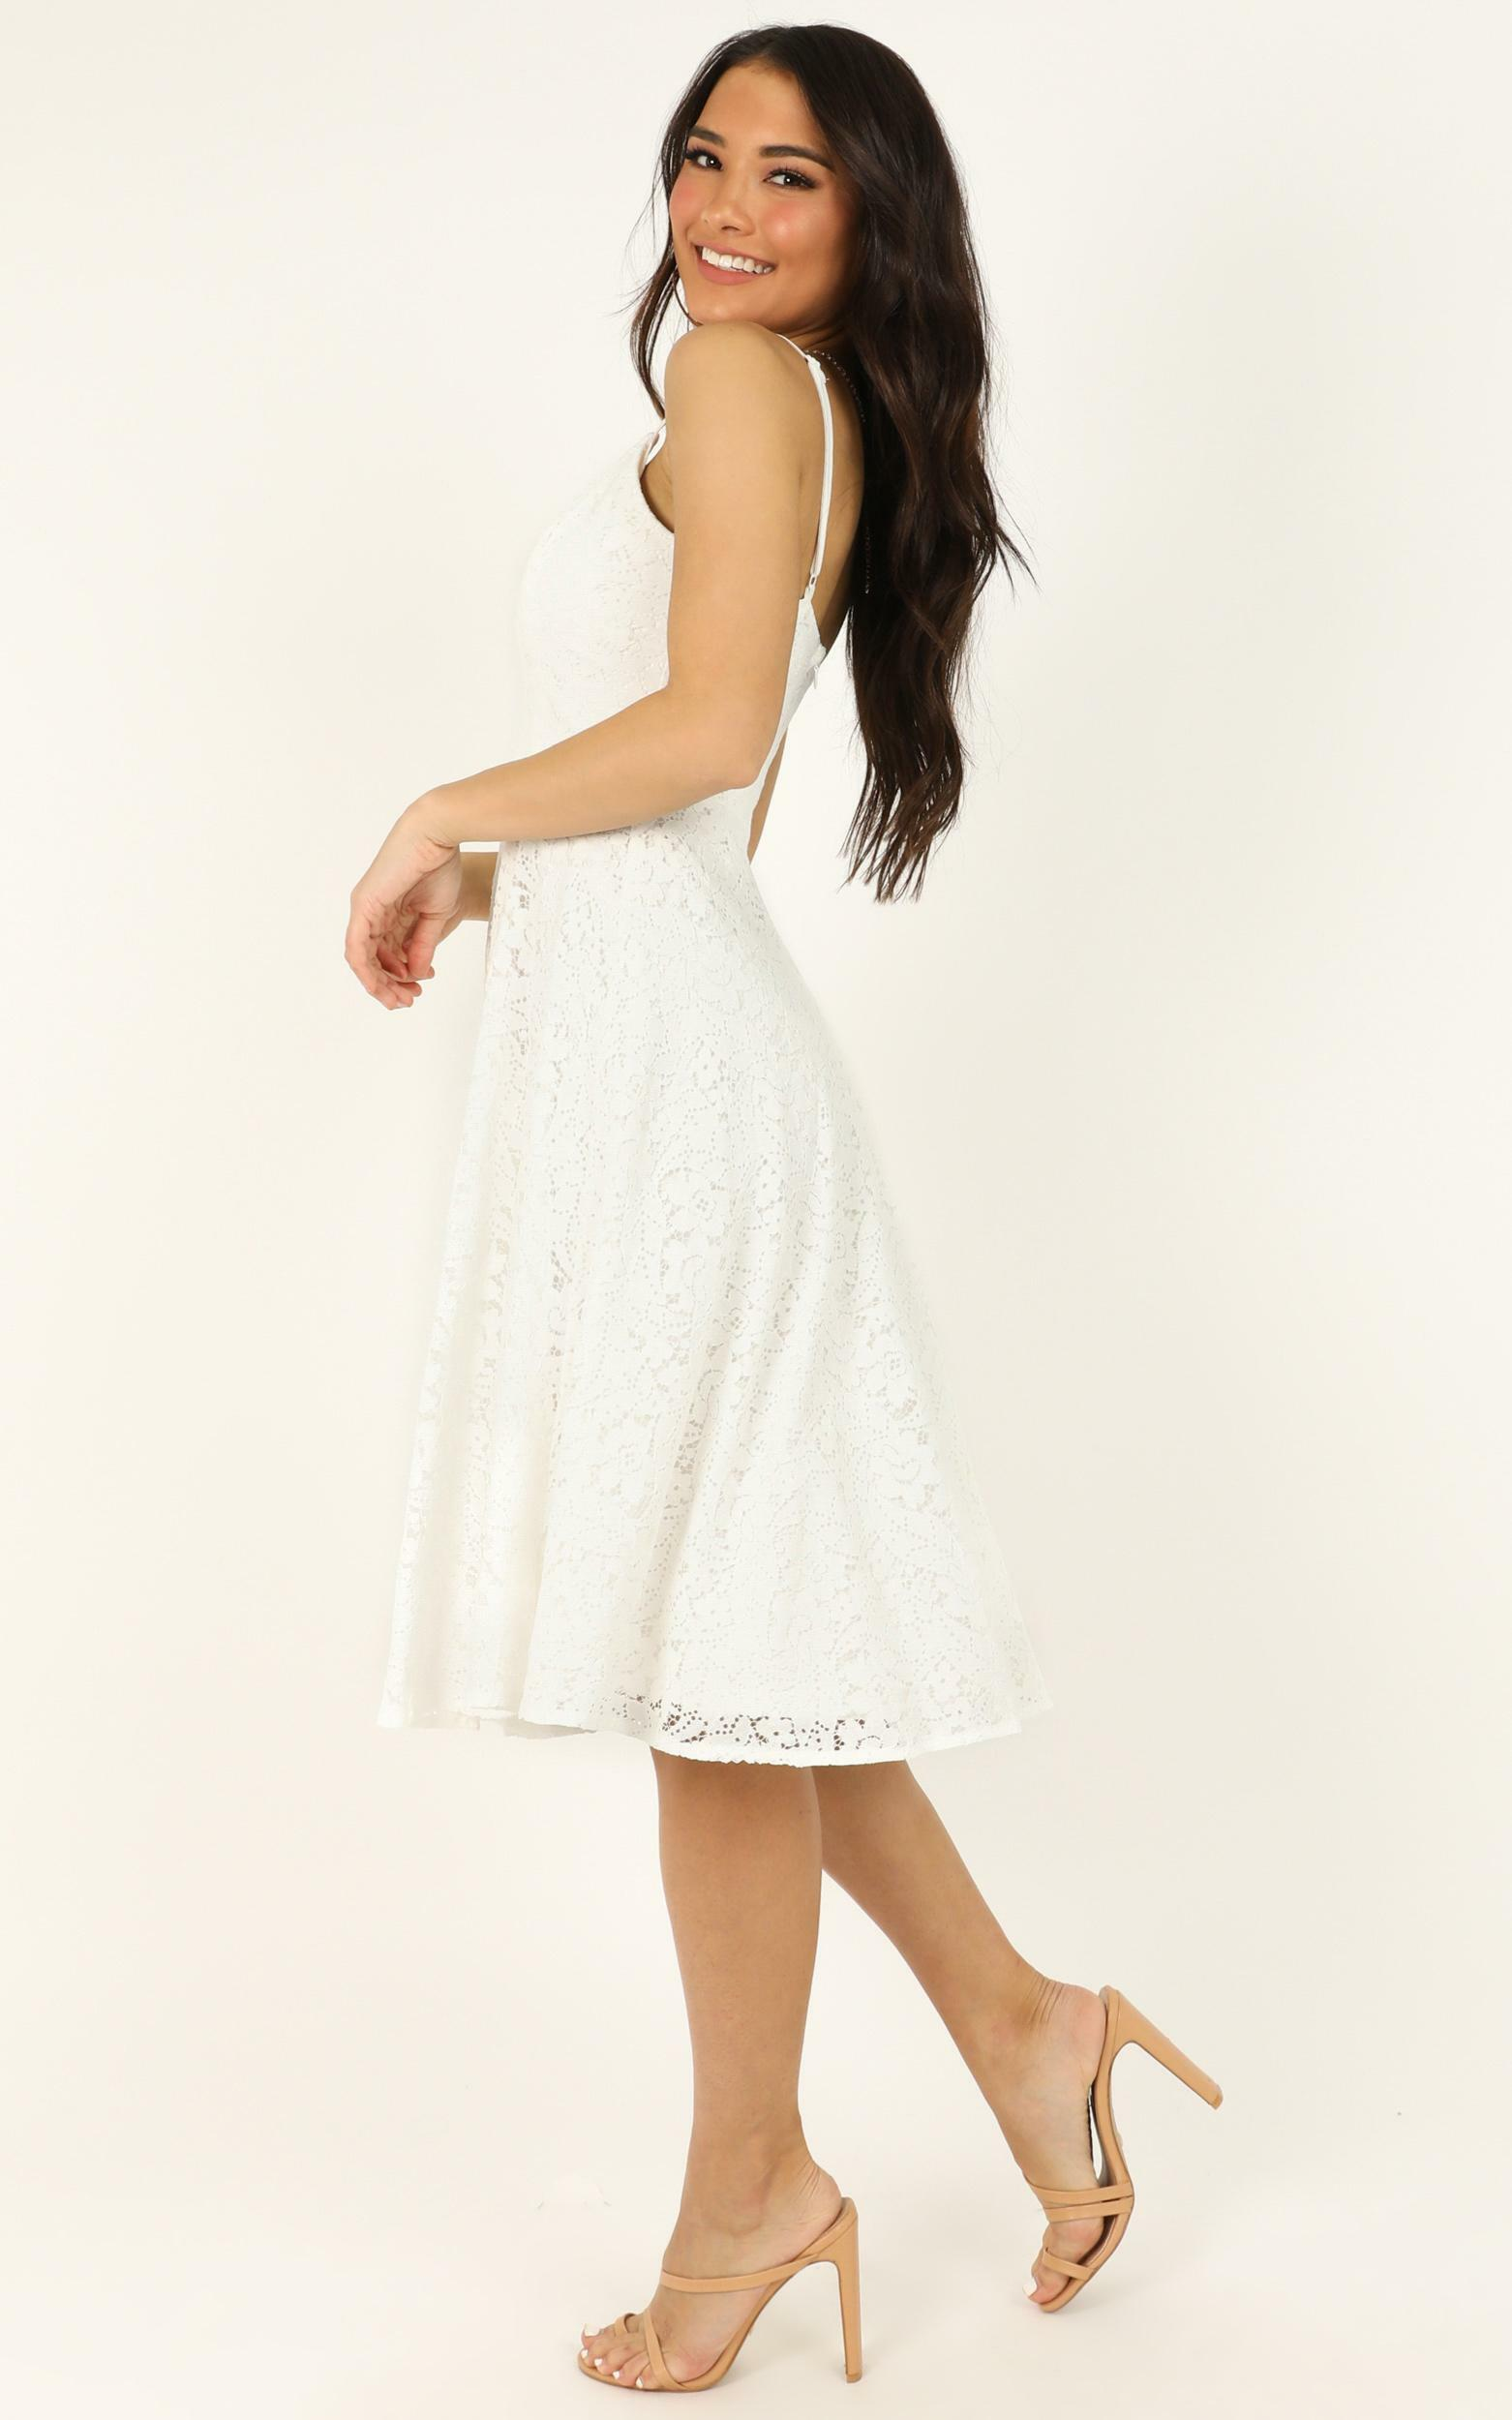 Far Beyond Dress in white lace - 20 (XXXXL), White, hi-res image number null